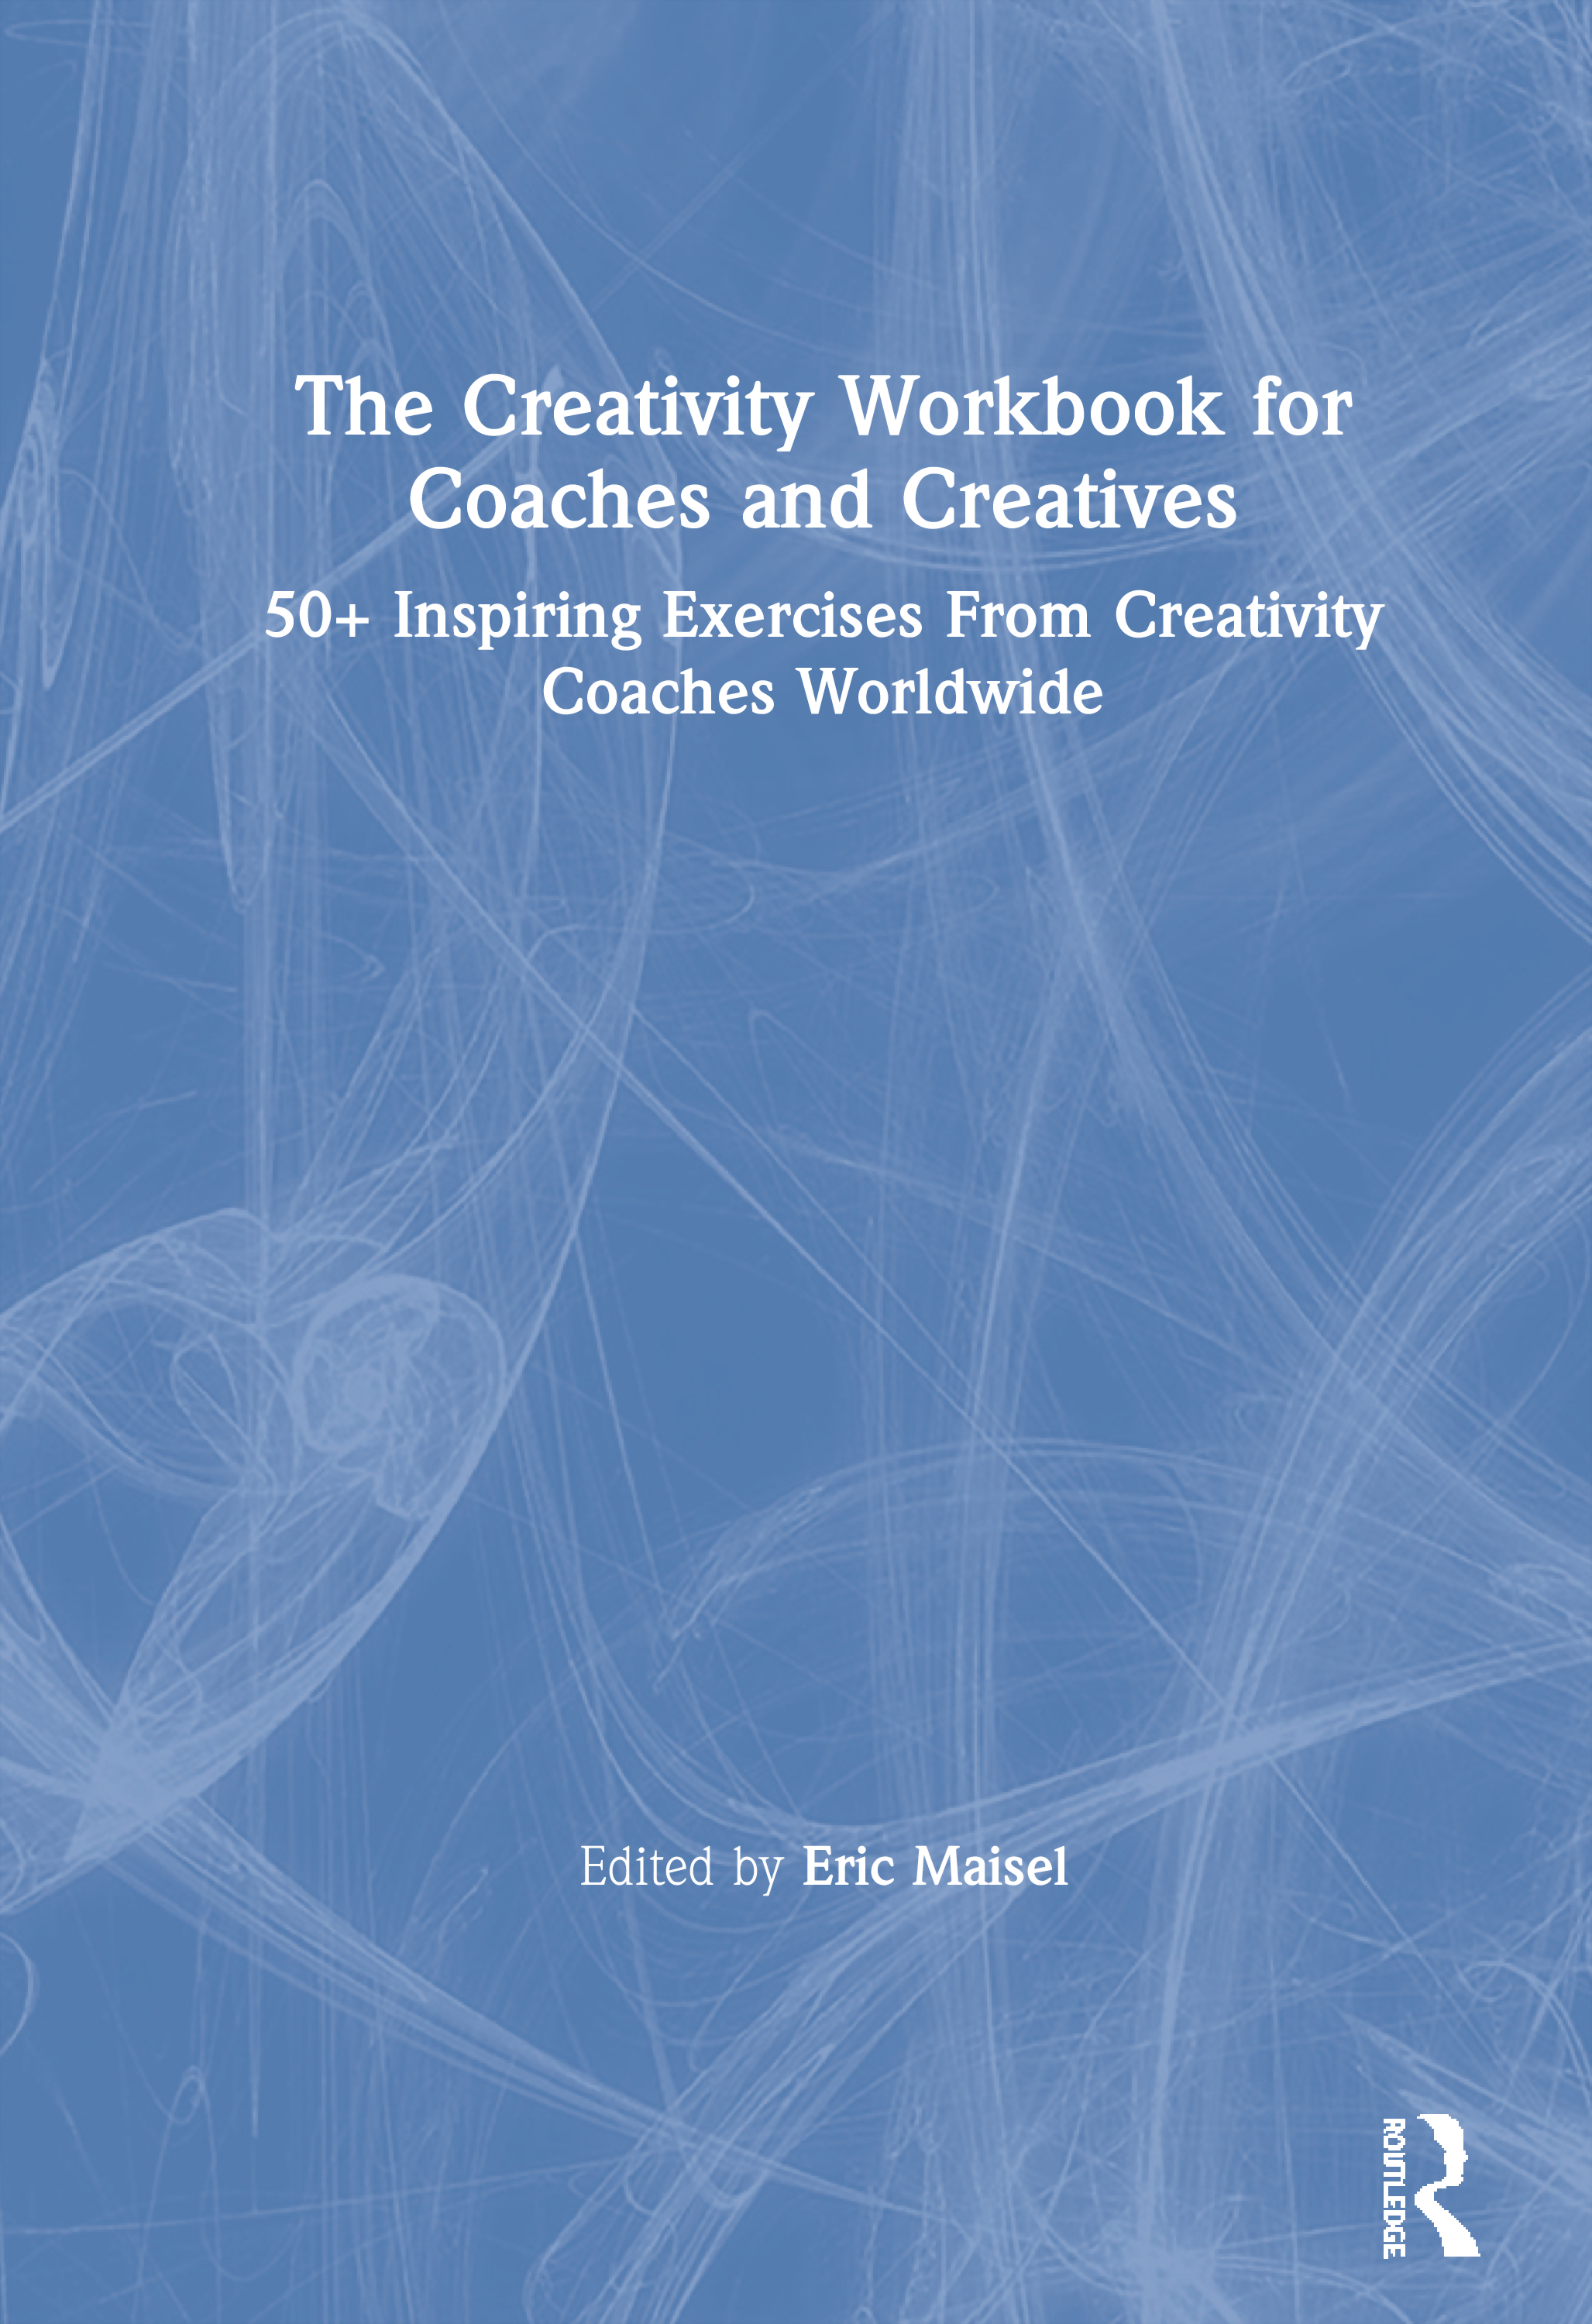 The Creativity Workbook for Coaches and Creatives: 50+ Inspiring Exercises from Creativity Coaches Worldwide, 1st Edition (Hardback) book cover